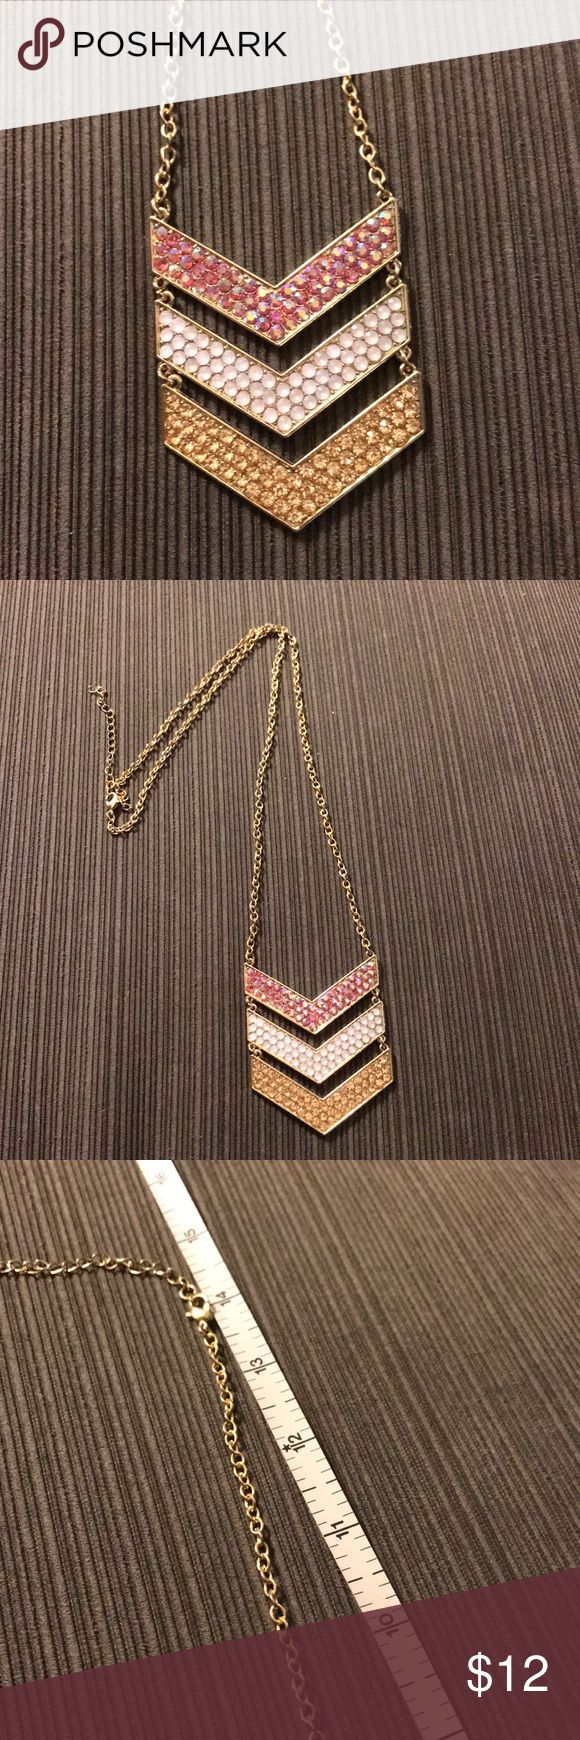 Multicolored chevron designed long chain necklace Very beautiful chevron designed necklace. 3 logos range in colors from fuchsia iridescent, a rose gold, and a white pearl color. Has a very long chain attached, there are 2 pictures showing the length of the chain from the emblem to the end, & at the end there's a small adjustable chain for more fitted. Outer detail is gold. If you're handy u can use pliers to shorten the chain.  This necklace is included in SALE of 3 for $20 and I'm open to…